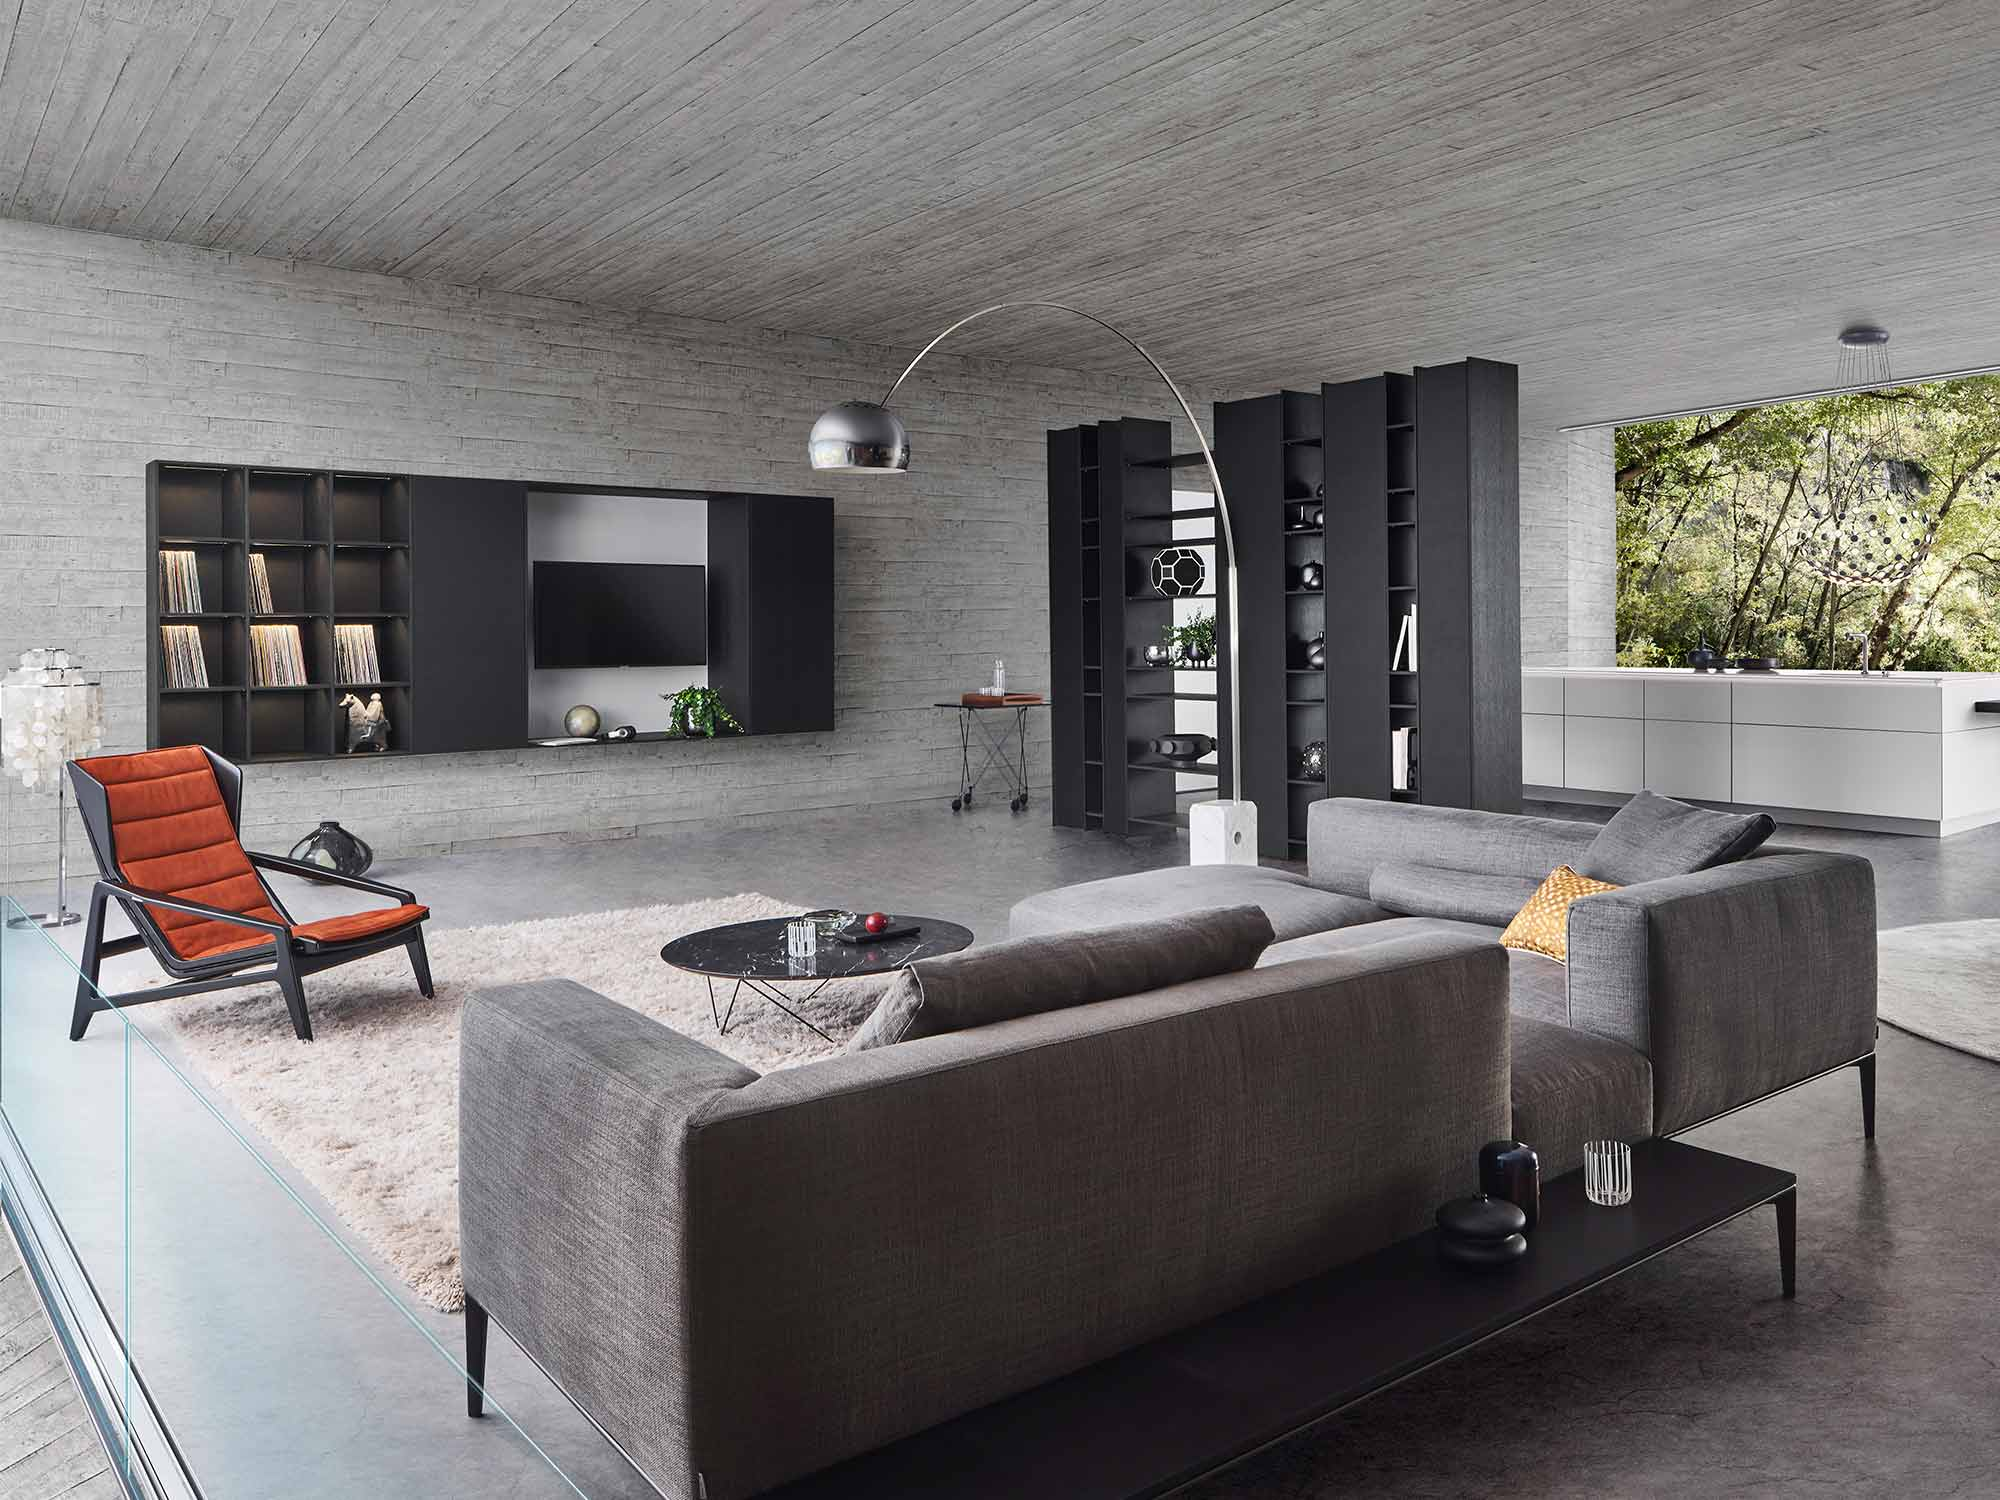 Modern living area interior design by Hubble